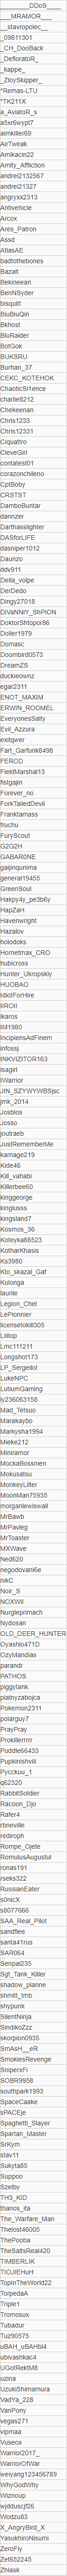 wt cheaters june 2017.png